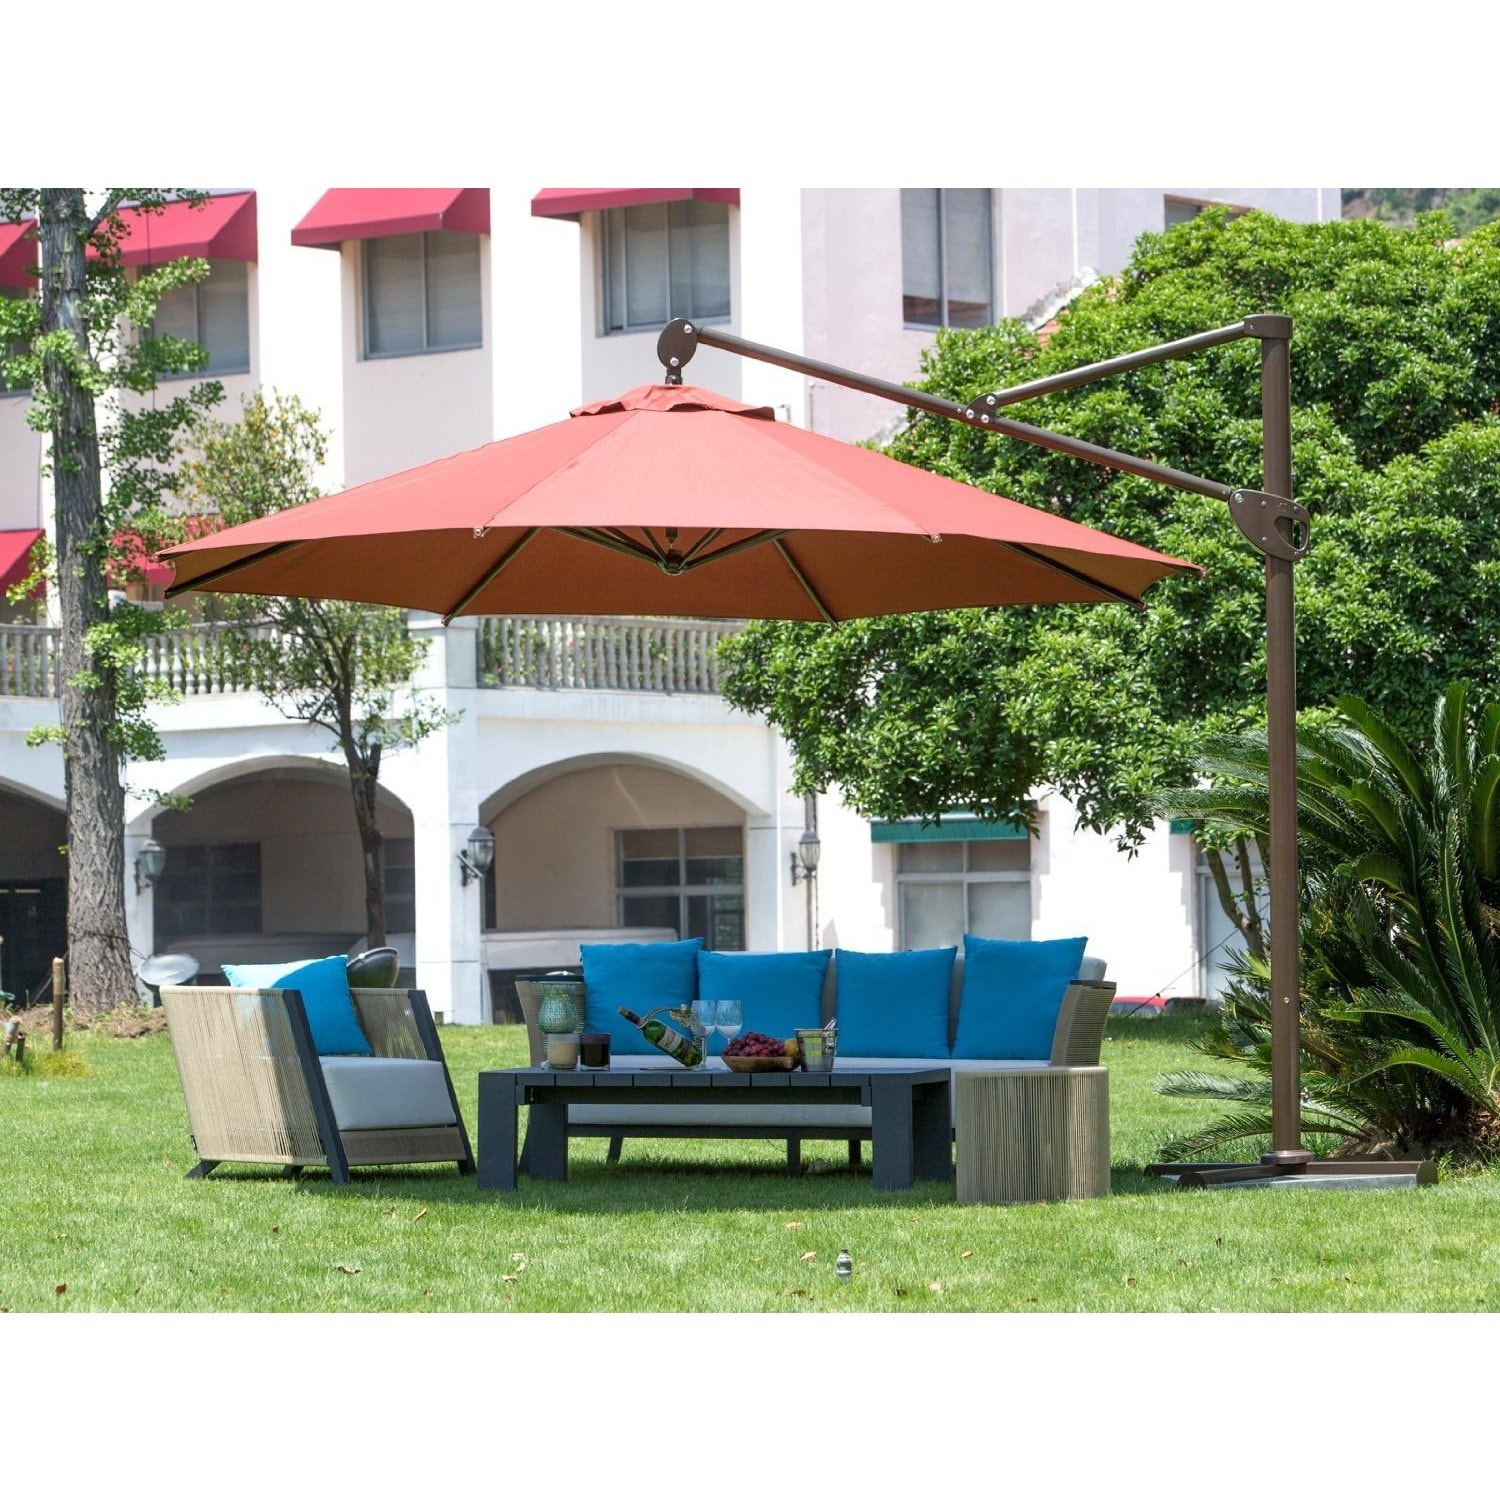 Abba Patio 11 foot Deluxe Octagon fset Cantilever Patio Umbrella